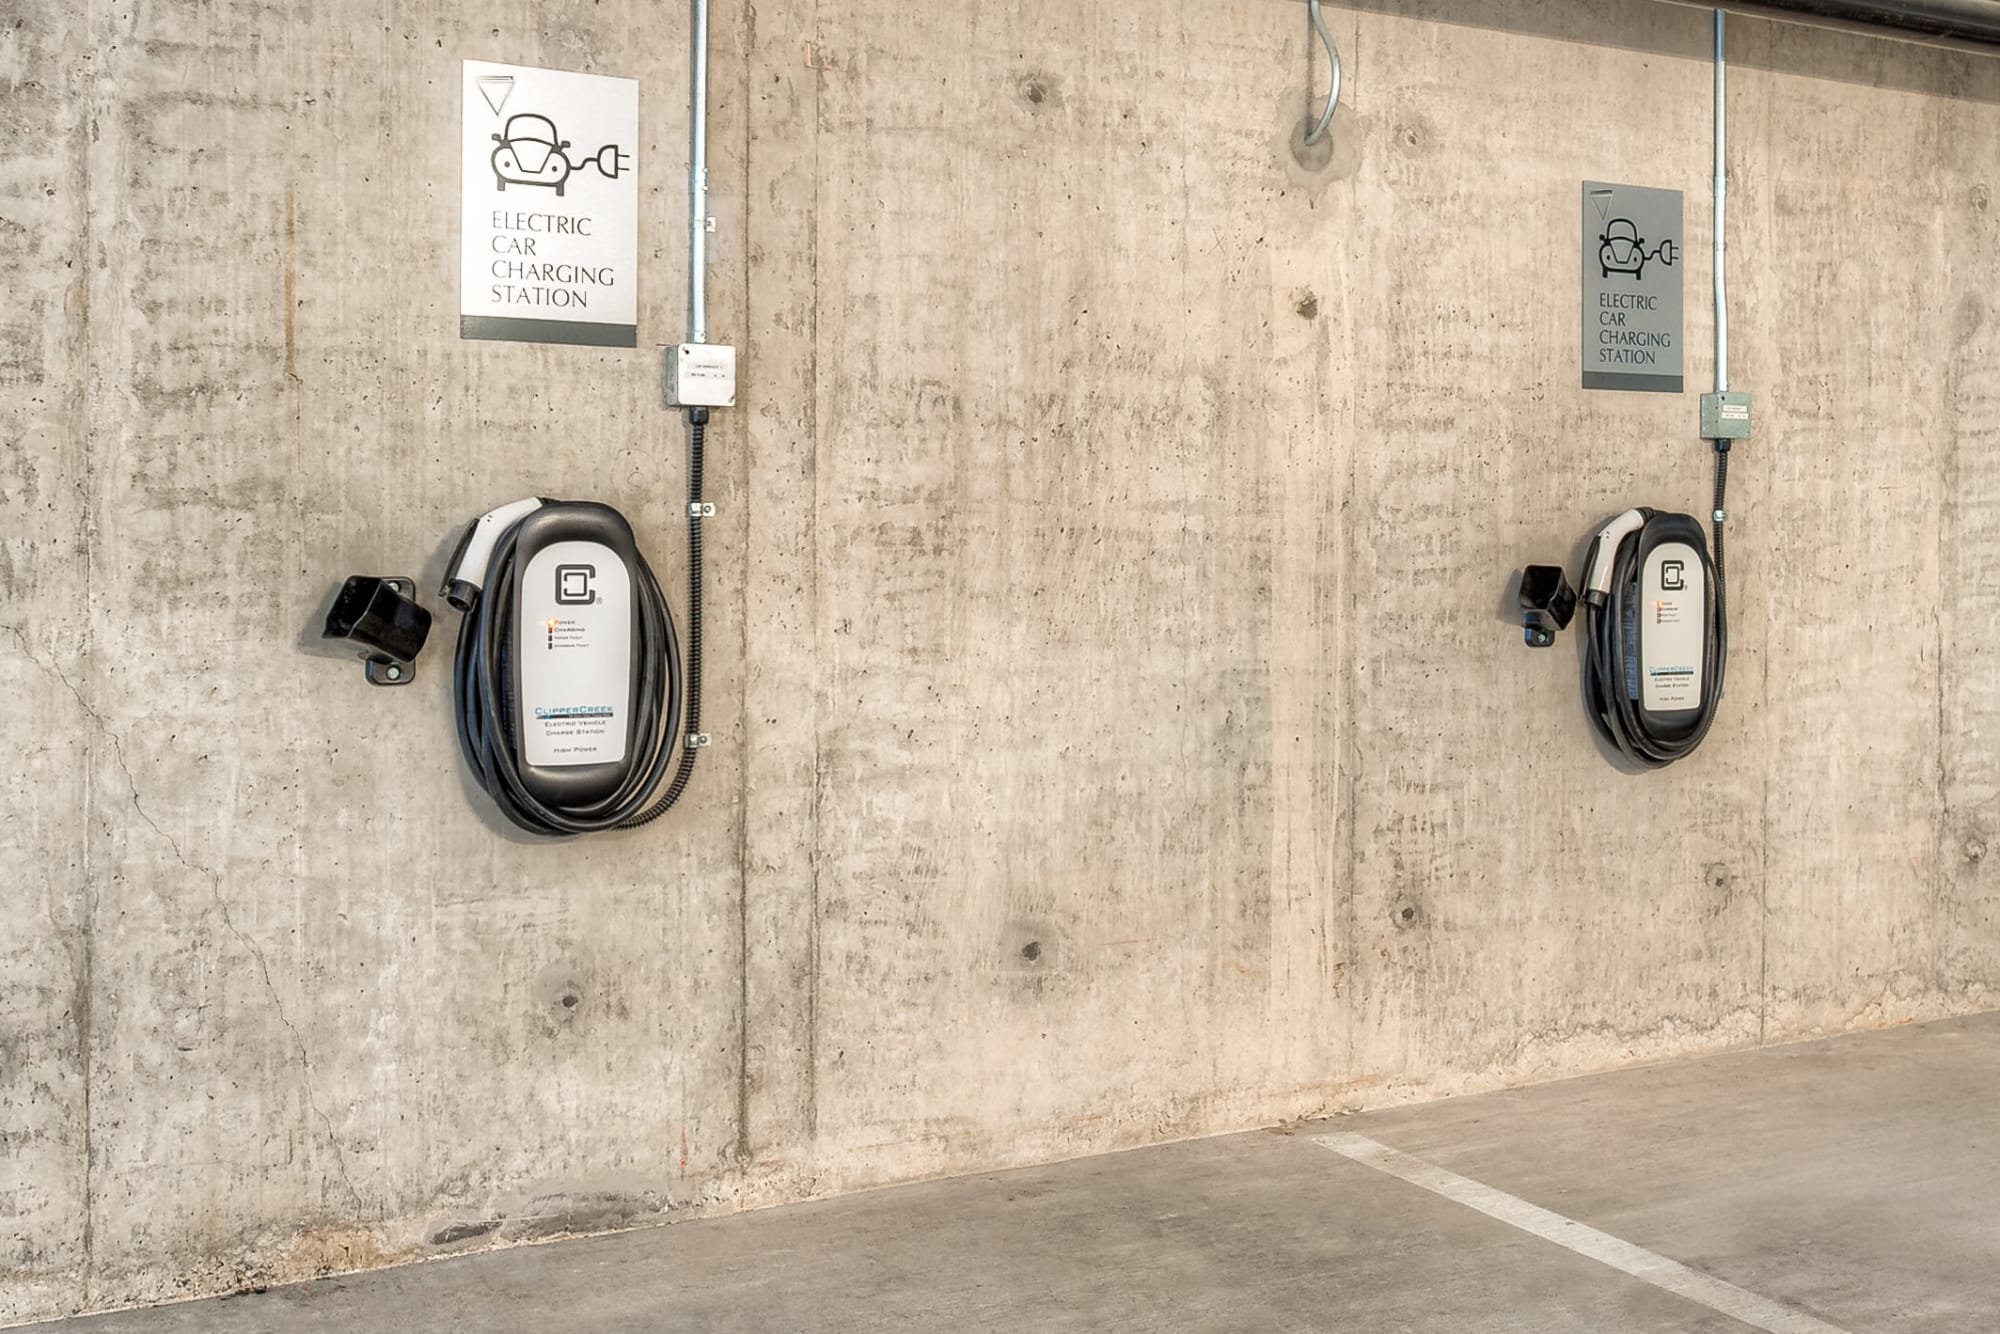 Electric vehicle charging stations at Tria Apartments in Newcastle, Washington